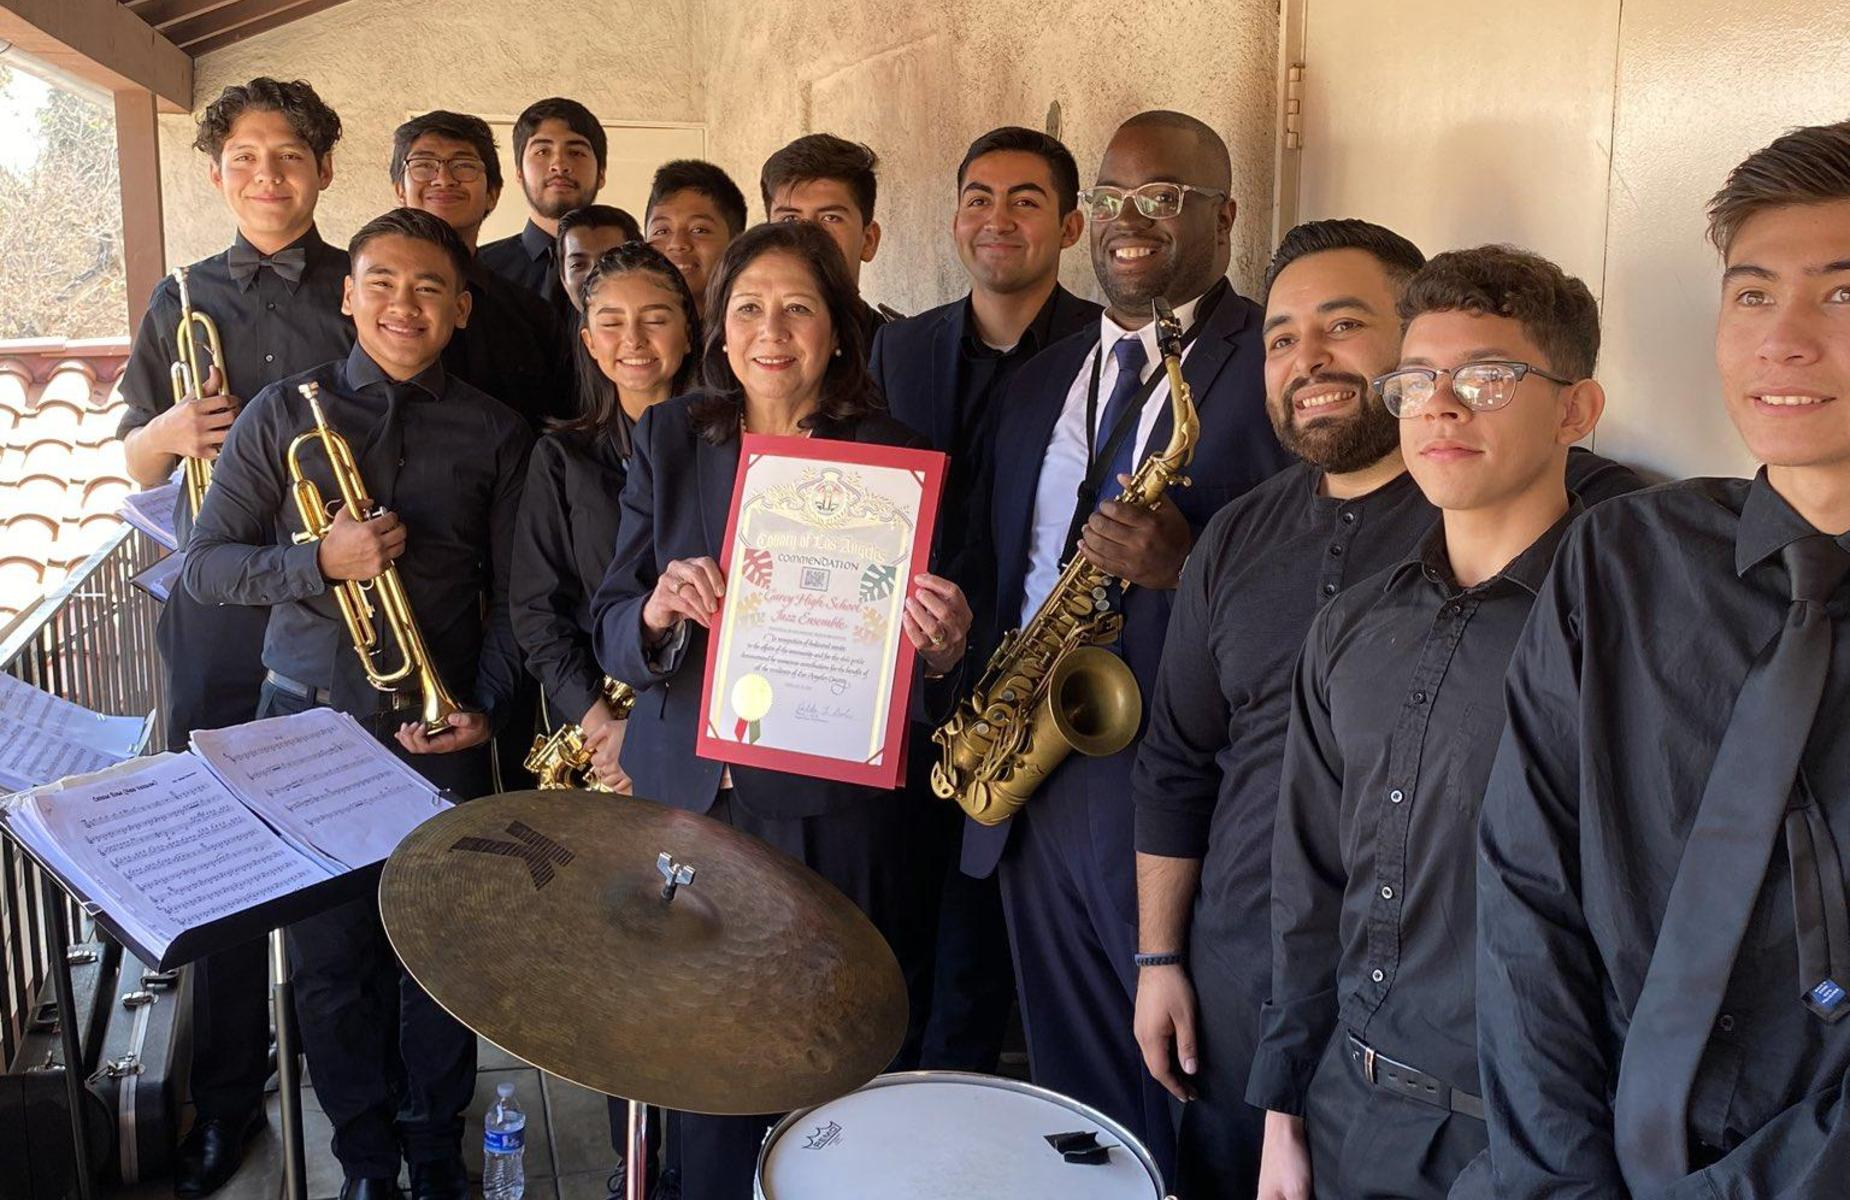 We are #PROUD of our @GareyHighPUSD jazz band who performed for @HildaSolis  this morning! #proud2bepusd